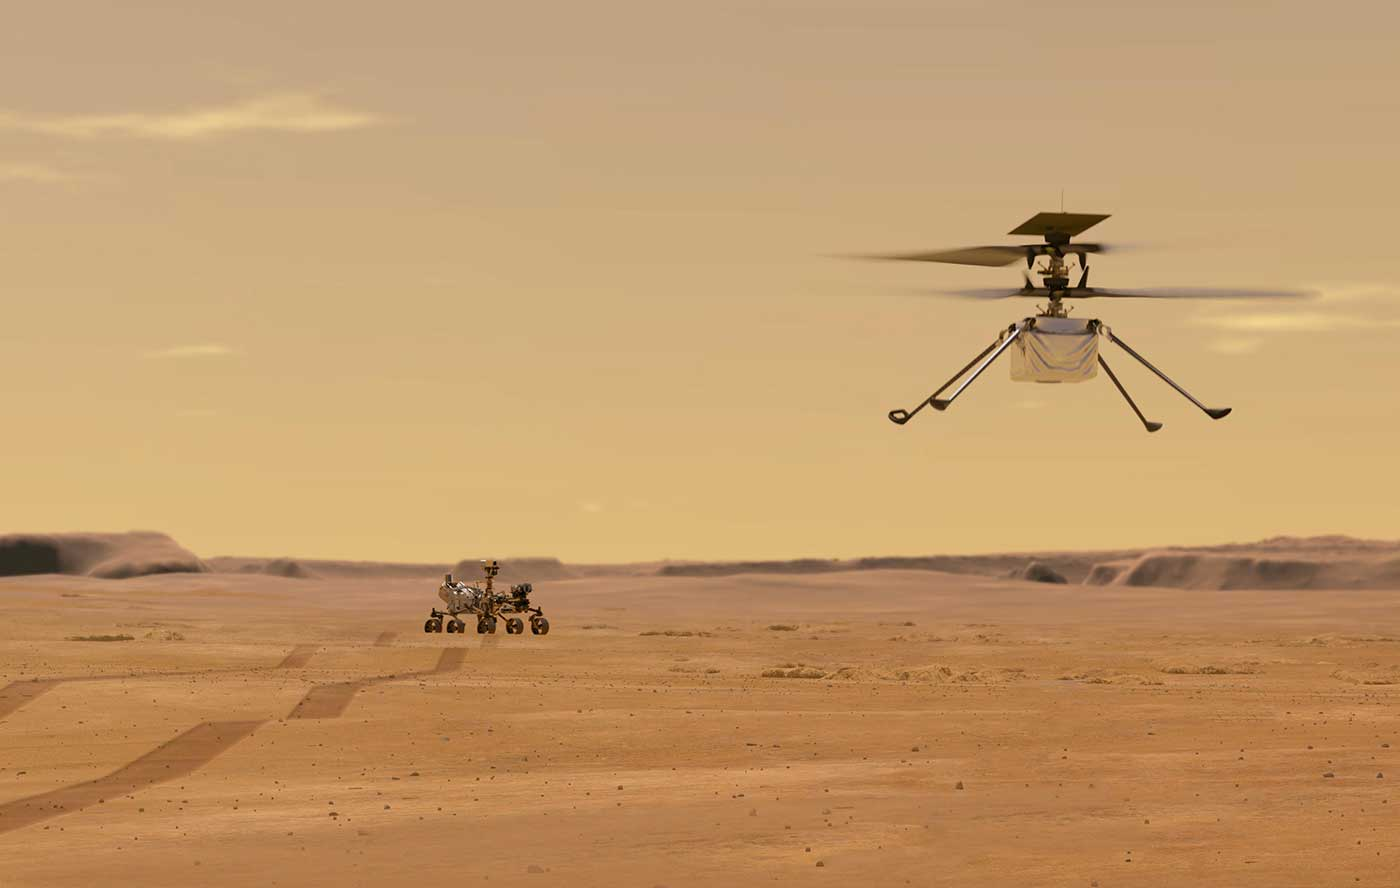 Perseverance rover and the Ingenuity helicopter.